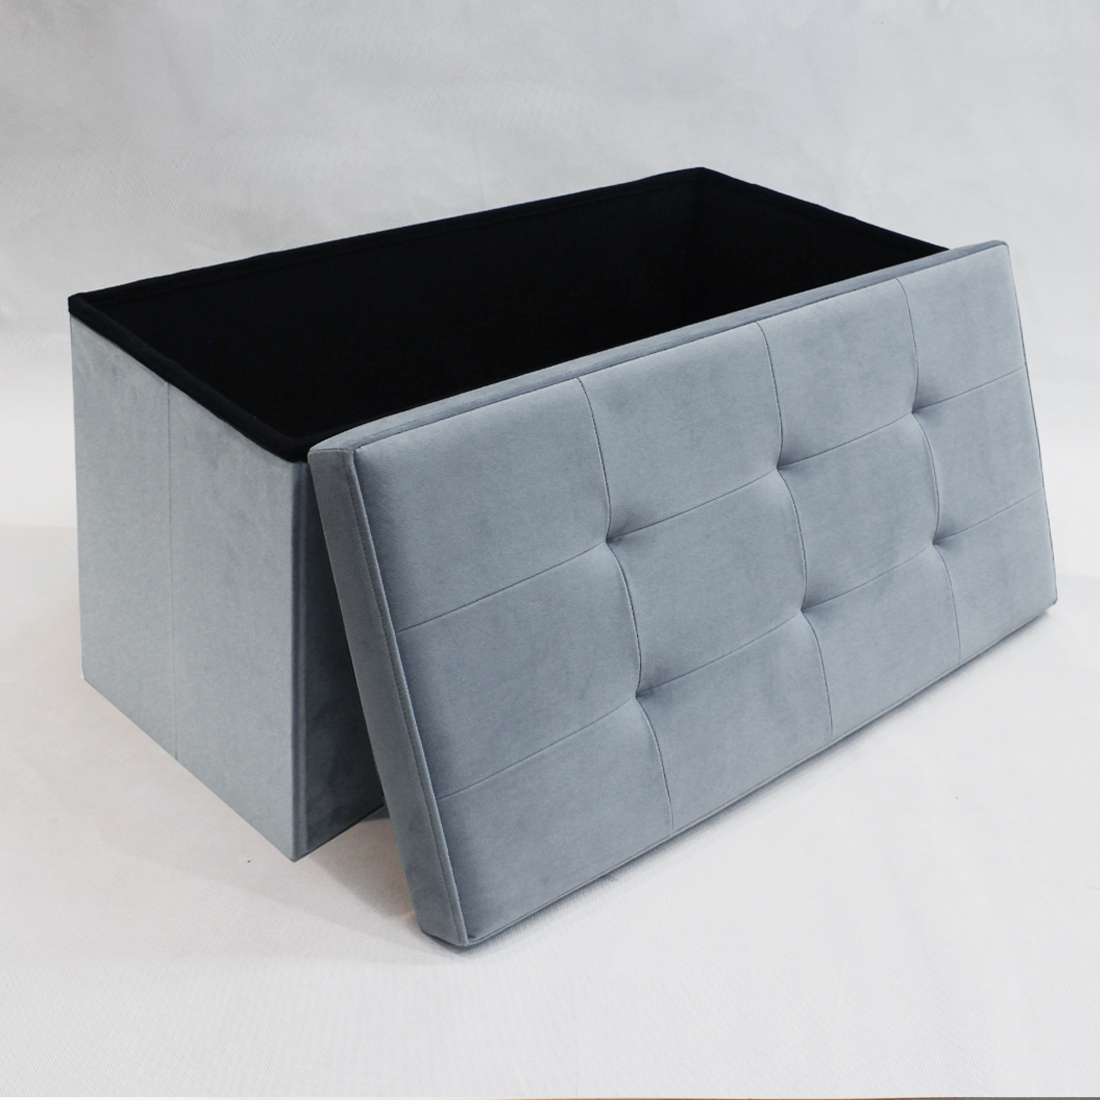 Fashion living leather stool fabric velvet storage foldable soft chair bed ottoman design table sofa bench furniture